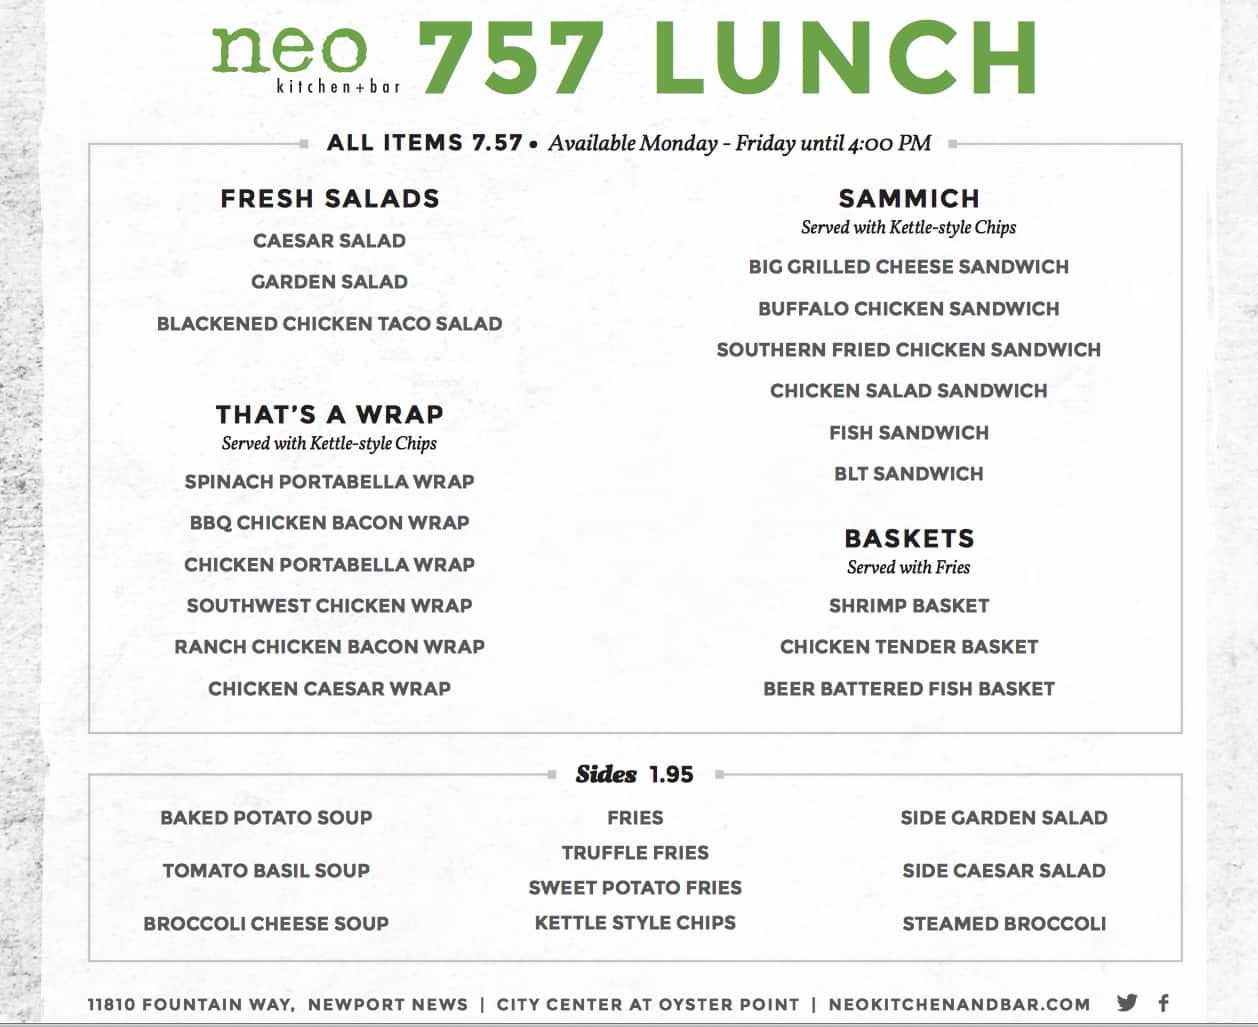 neo kitchen + bar menu, menu for neo kitchen + bar, newport news